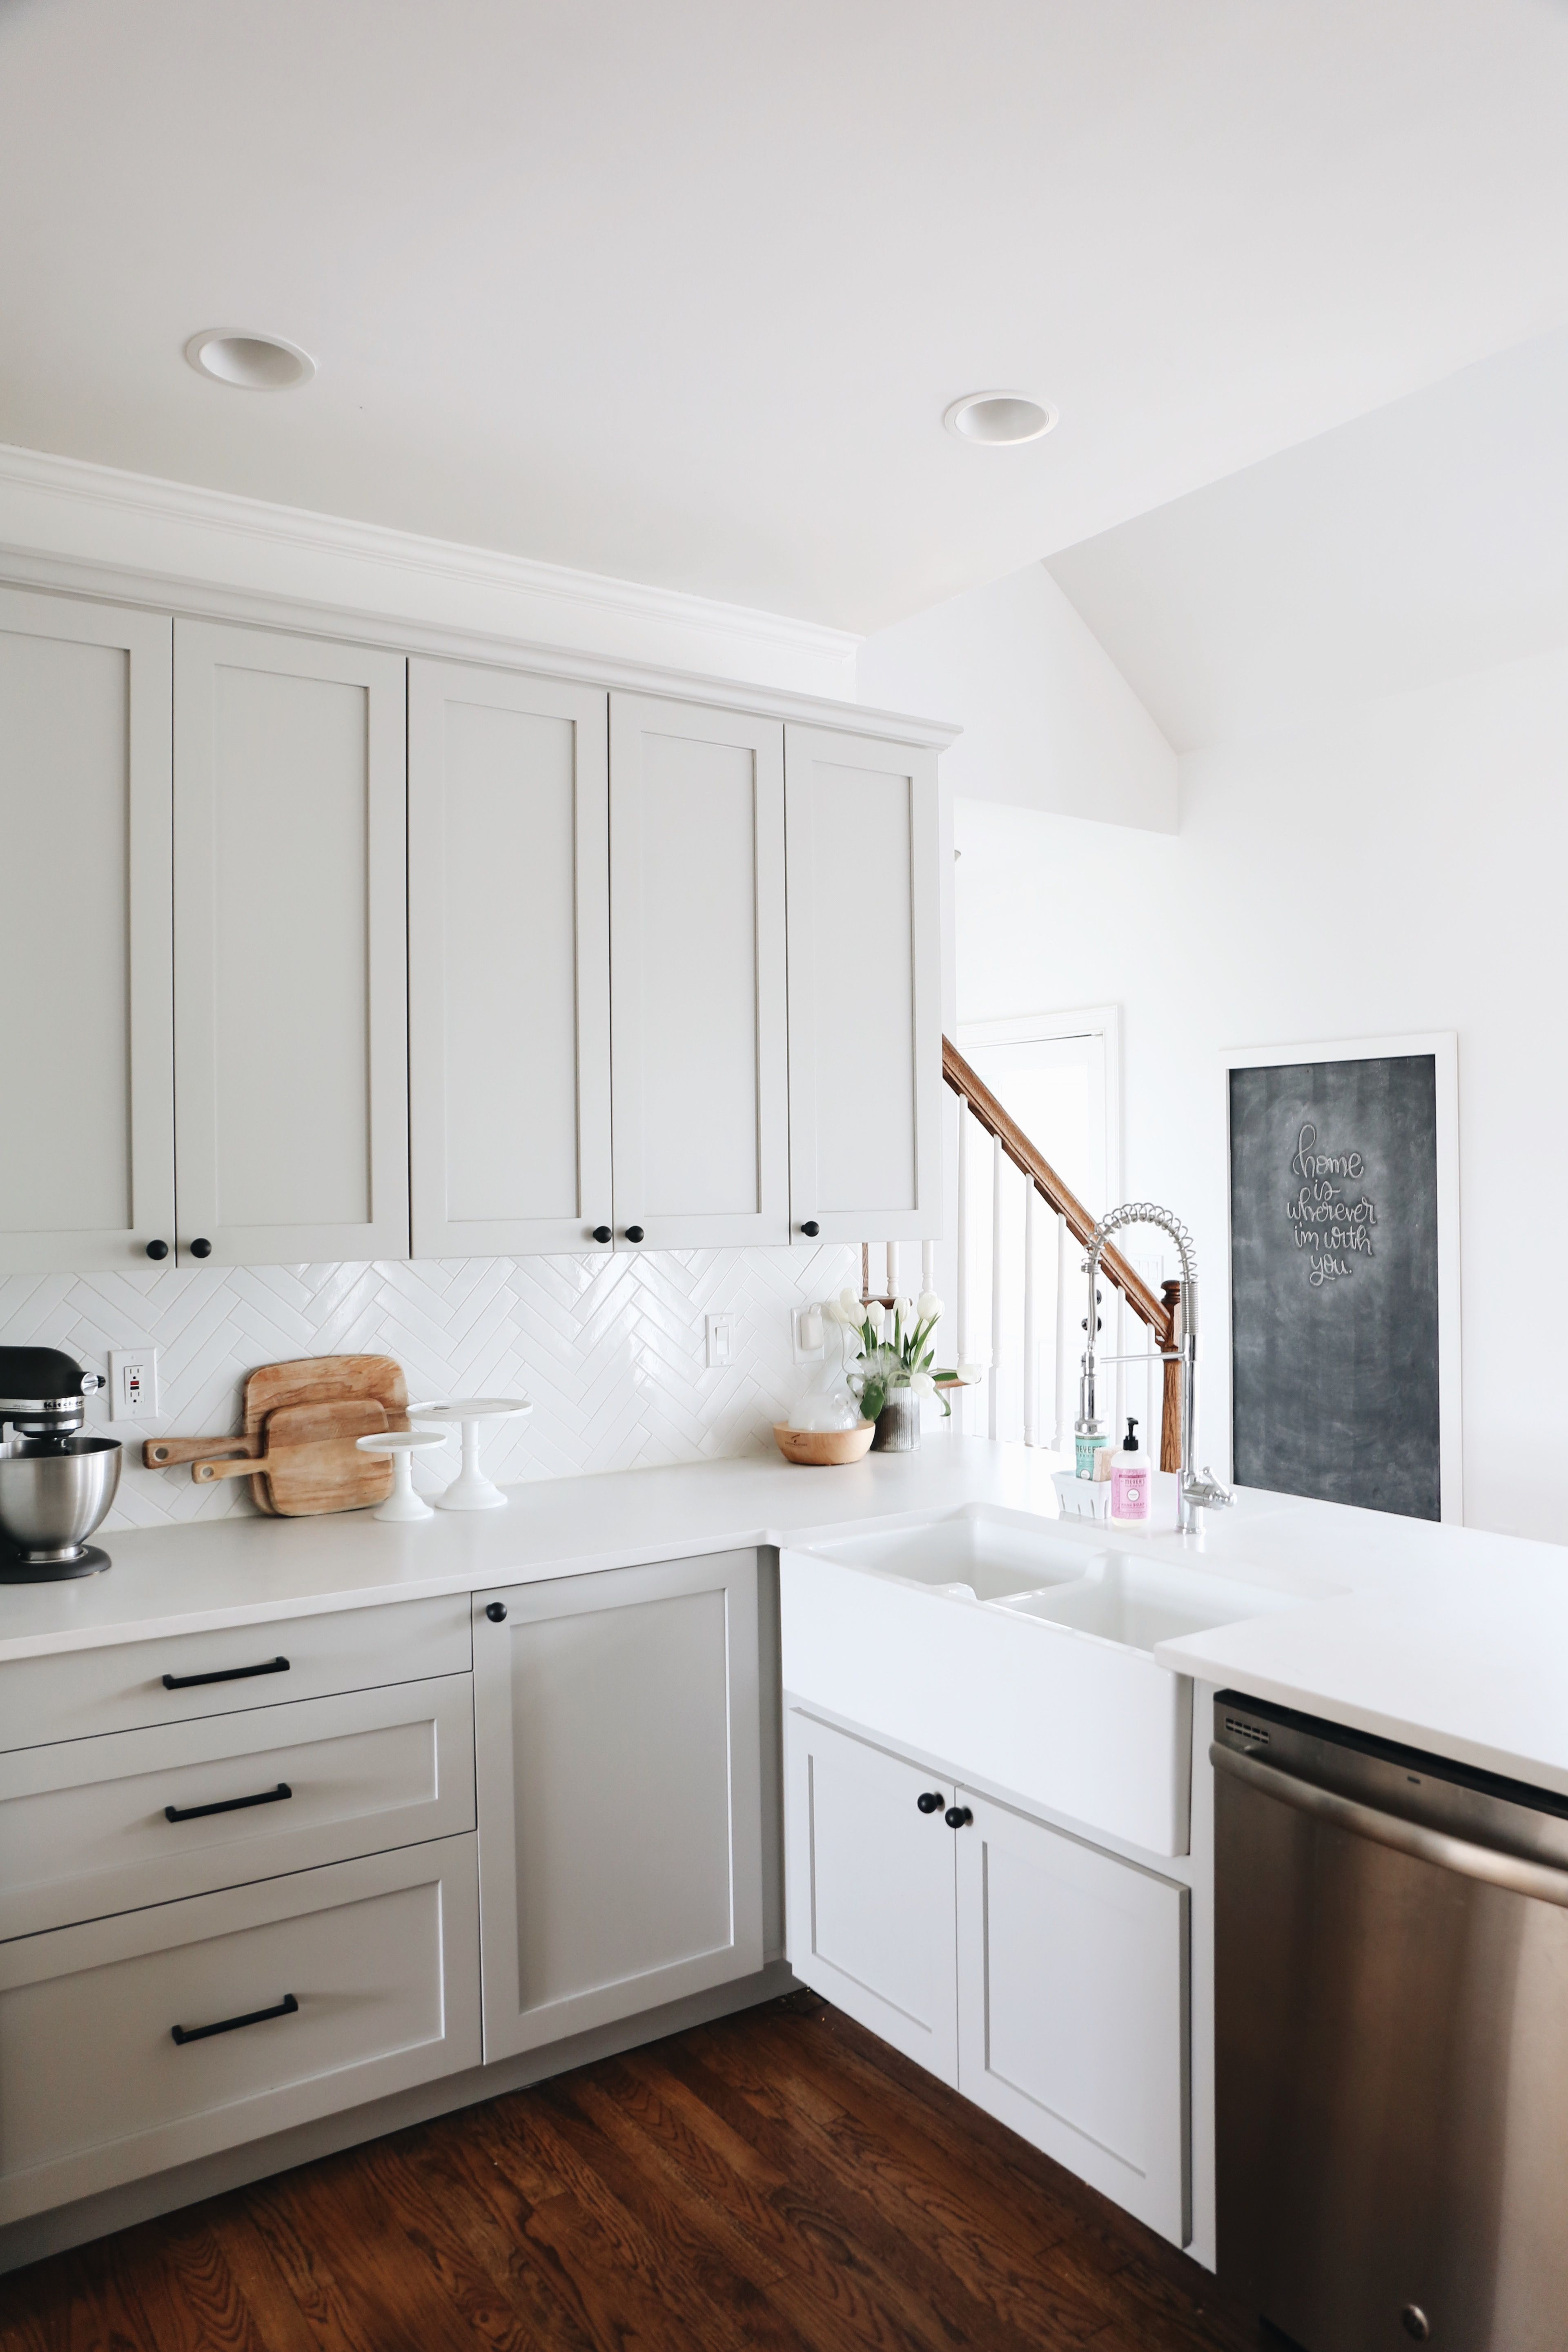 Our Kitchen Renovation Details  Herringbone backsplash